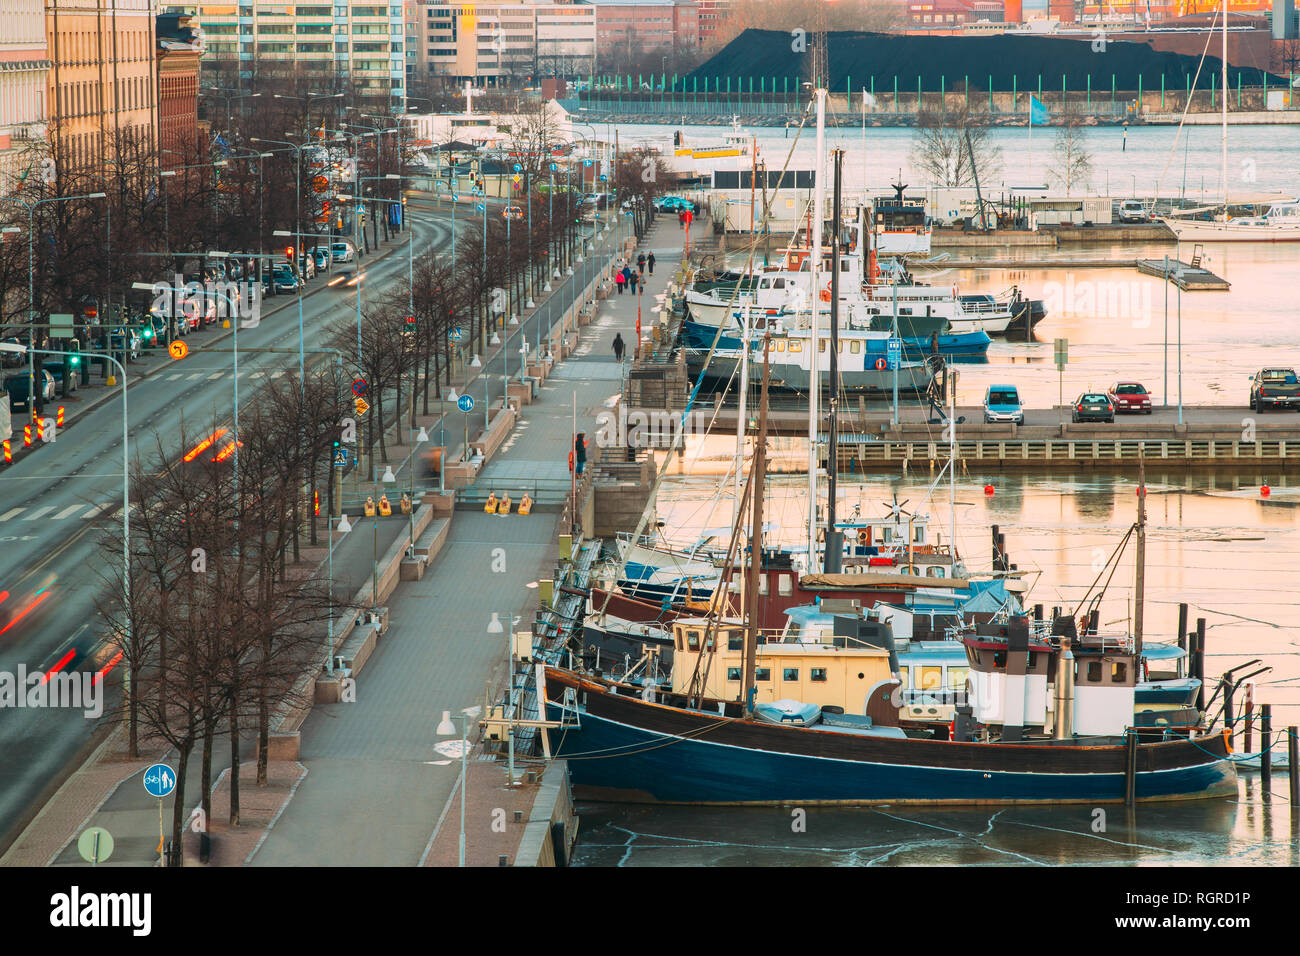 Helsinki, Finland. View Of Pohjoisranta Street And Ships, Boats And Yachts Moored Near Pier In Evening Time. - Stock Image